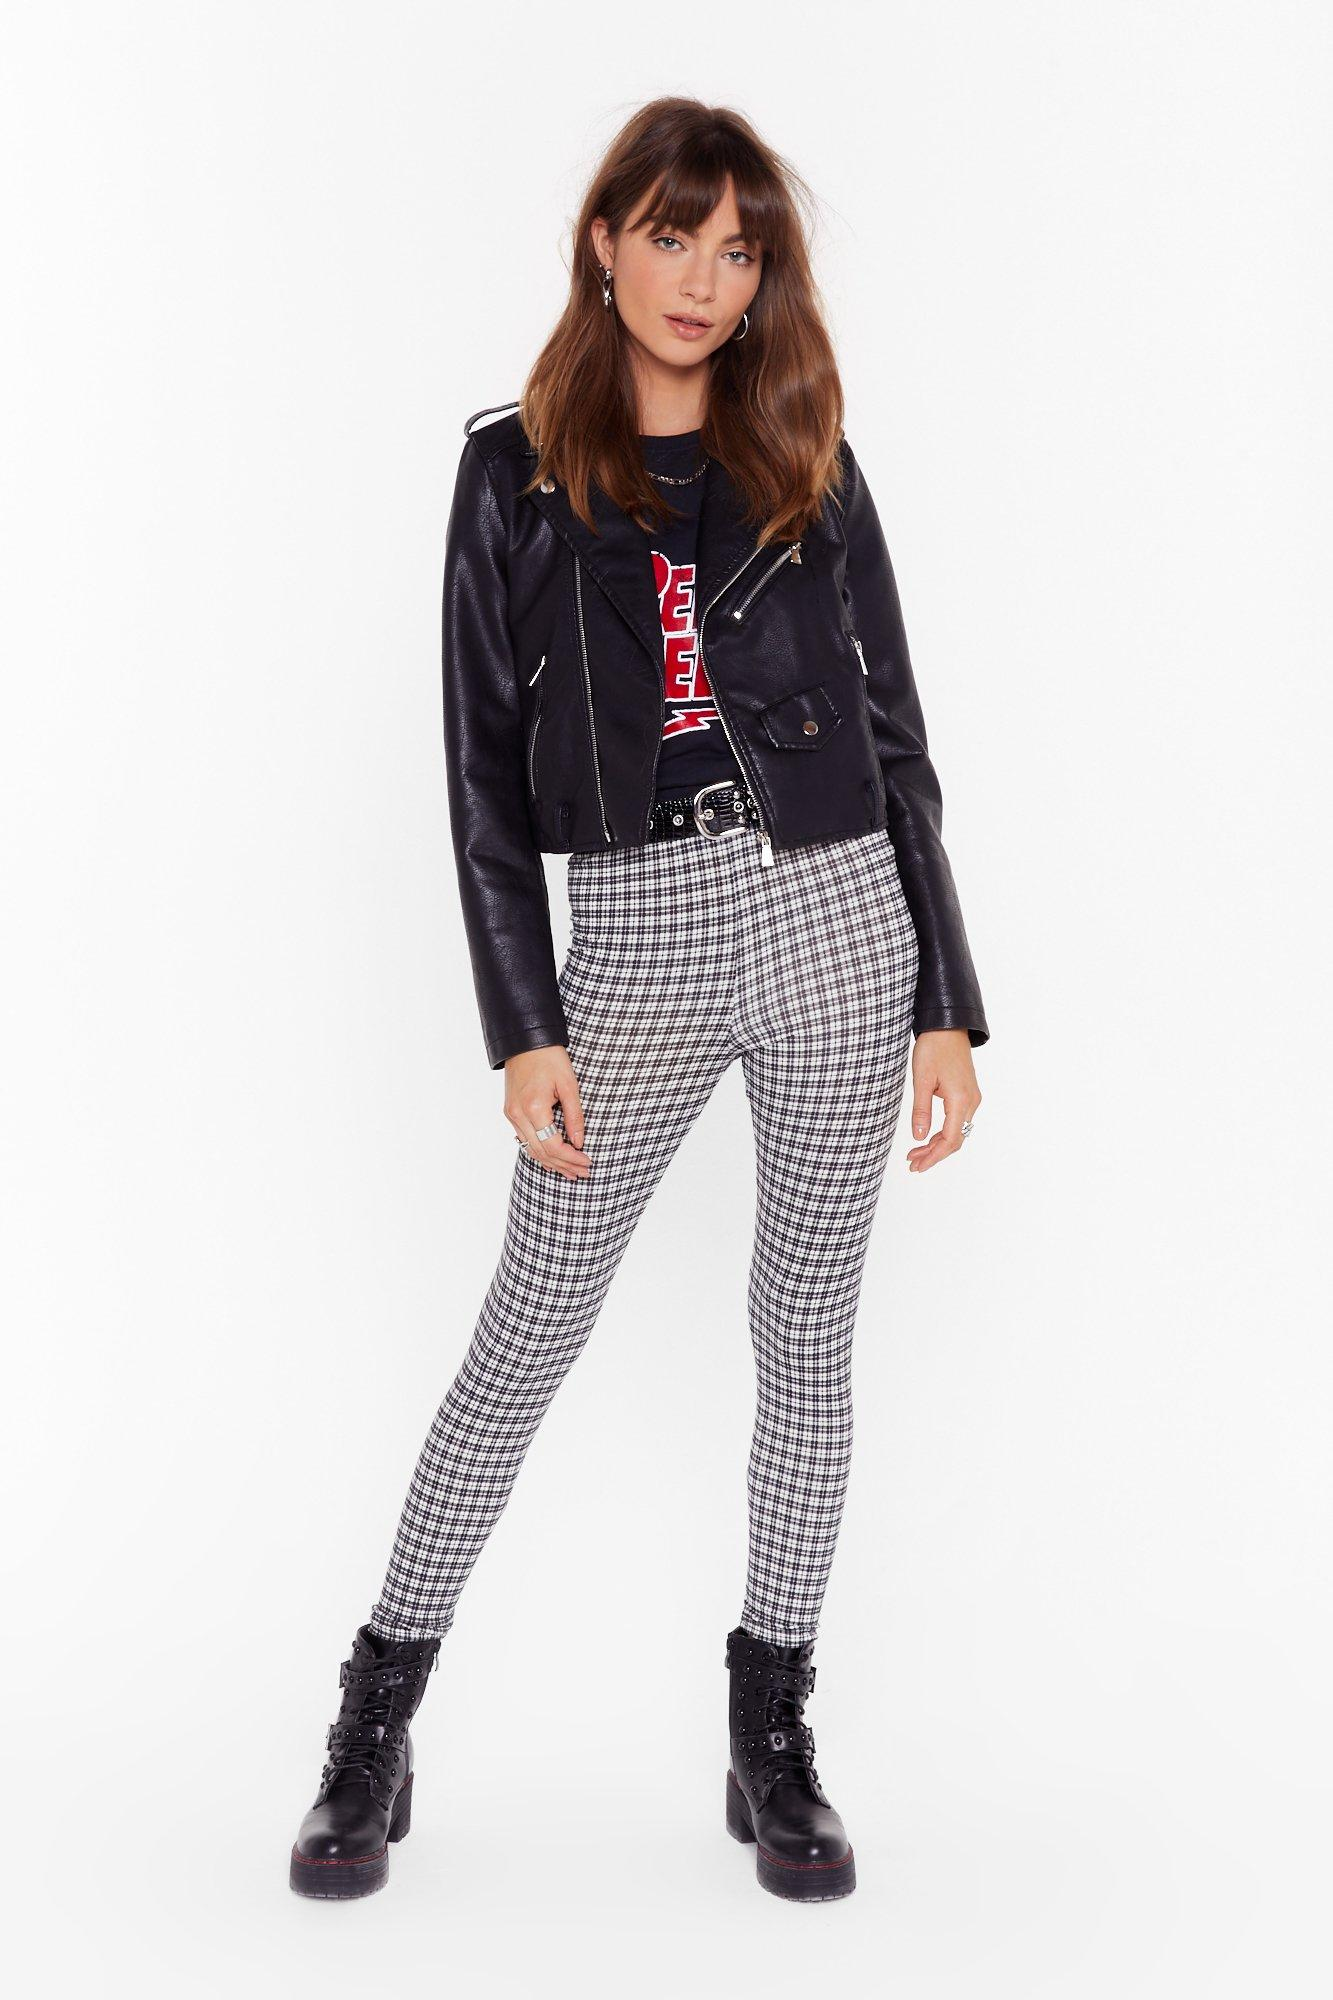 Image of What I Grid For Love High-Waisted Leggings